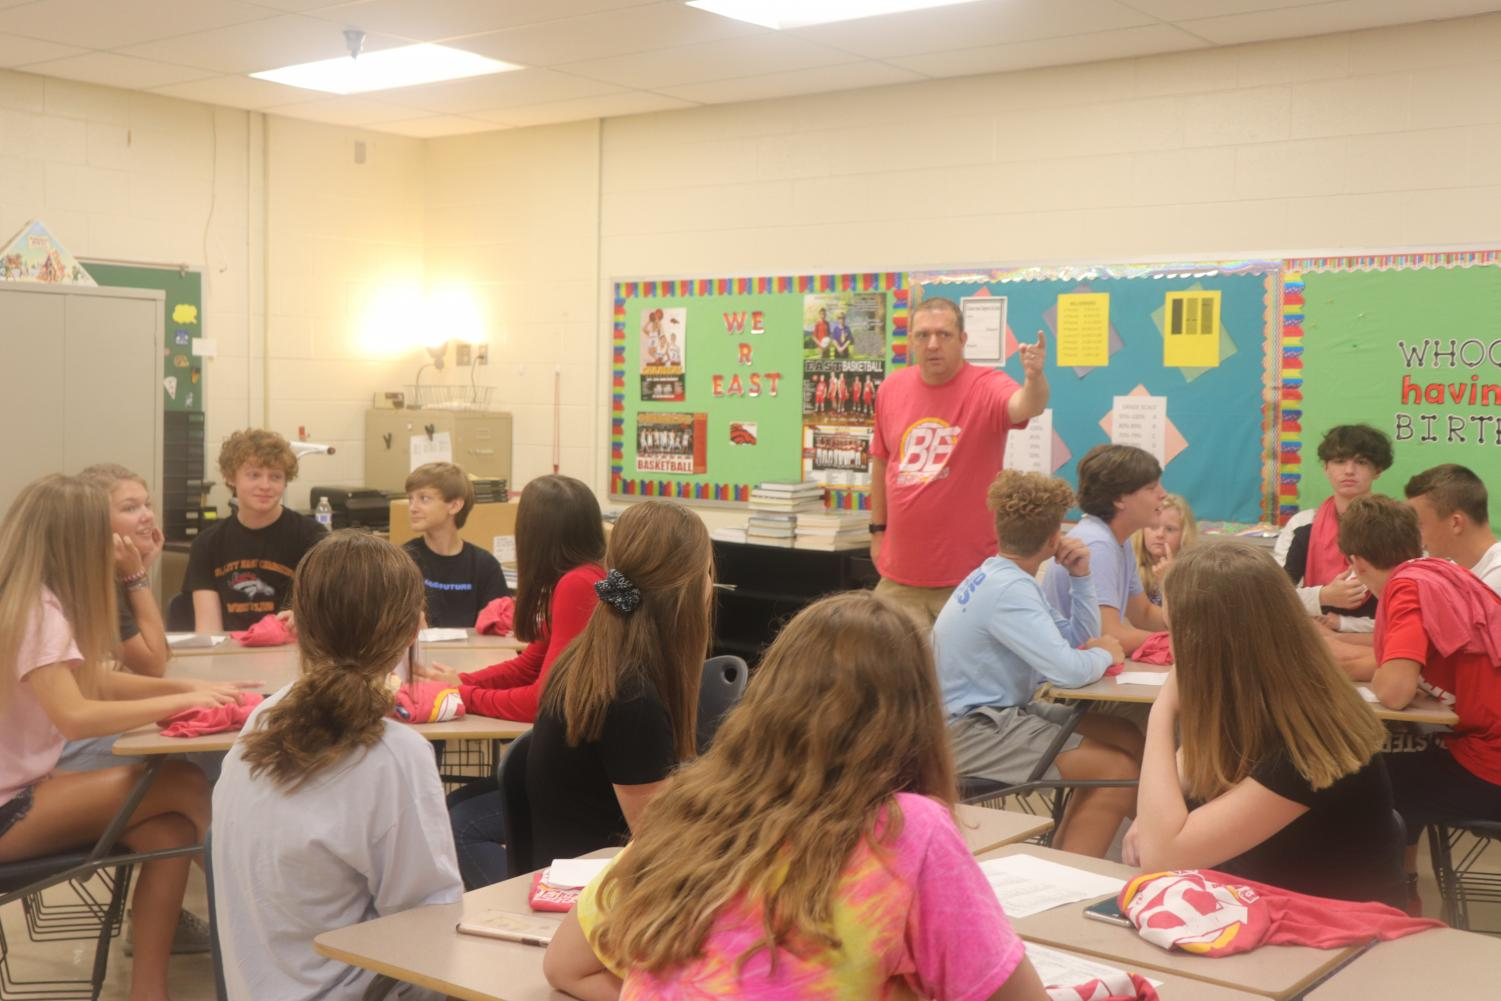 Algebra teacher, Jason Couch prepares his  incoming students by explaining his expectations for them. This class was his fifth period class in which students were listening to his instructions intently.